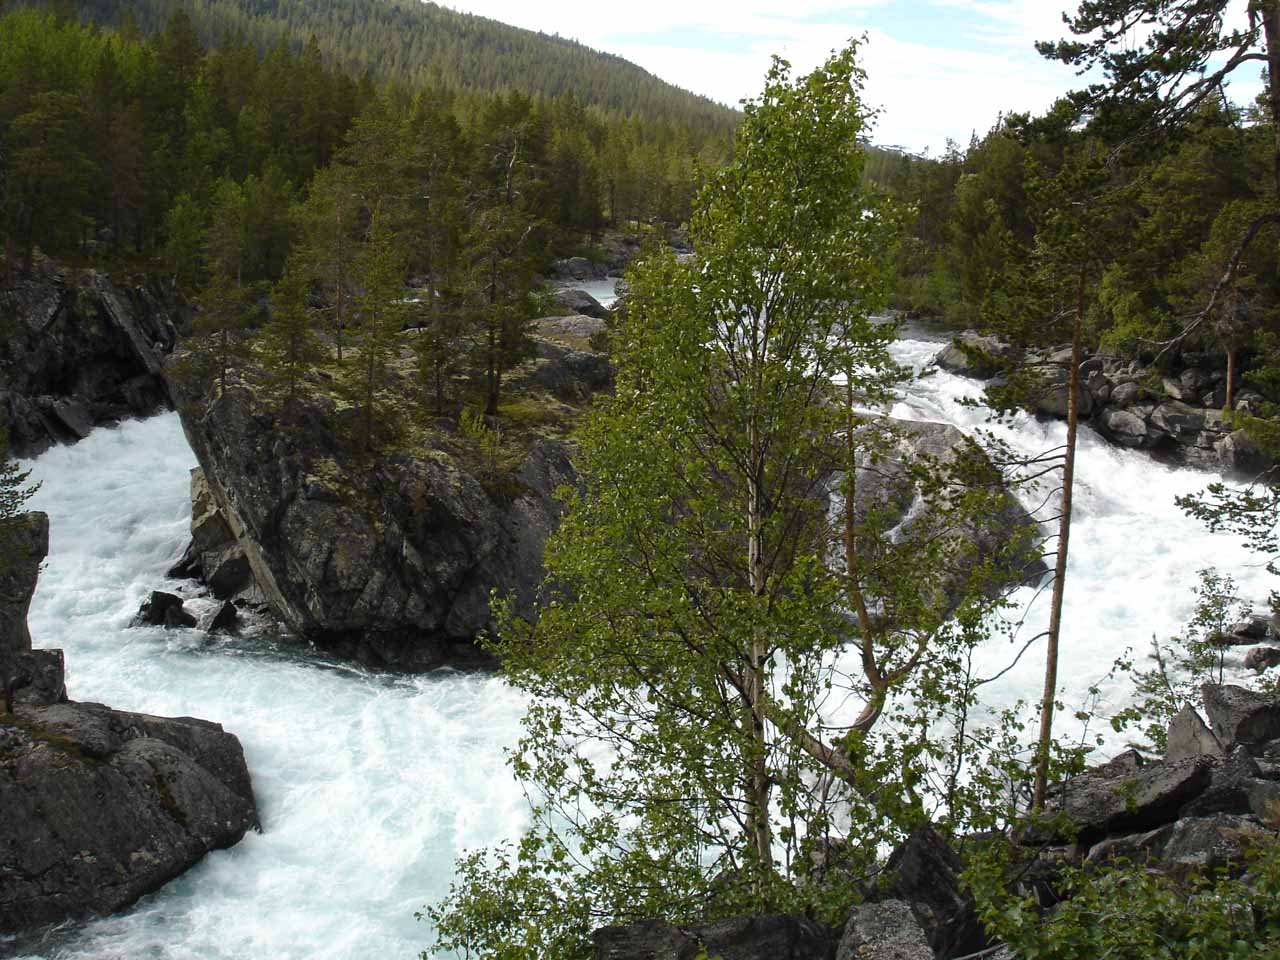 Another part of the rapids near where the map said Pollfoss was supposed to be